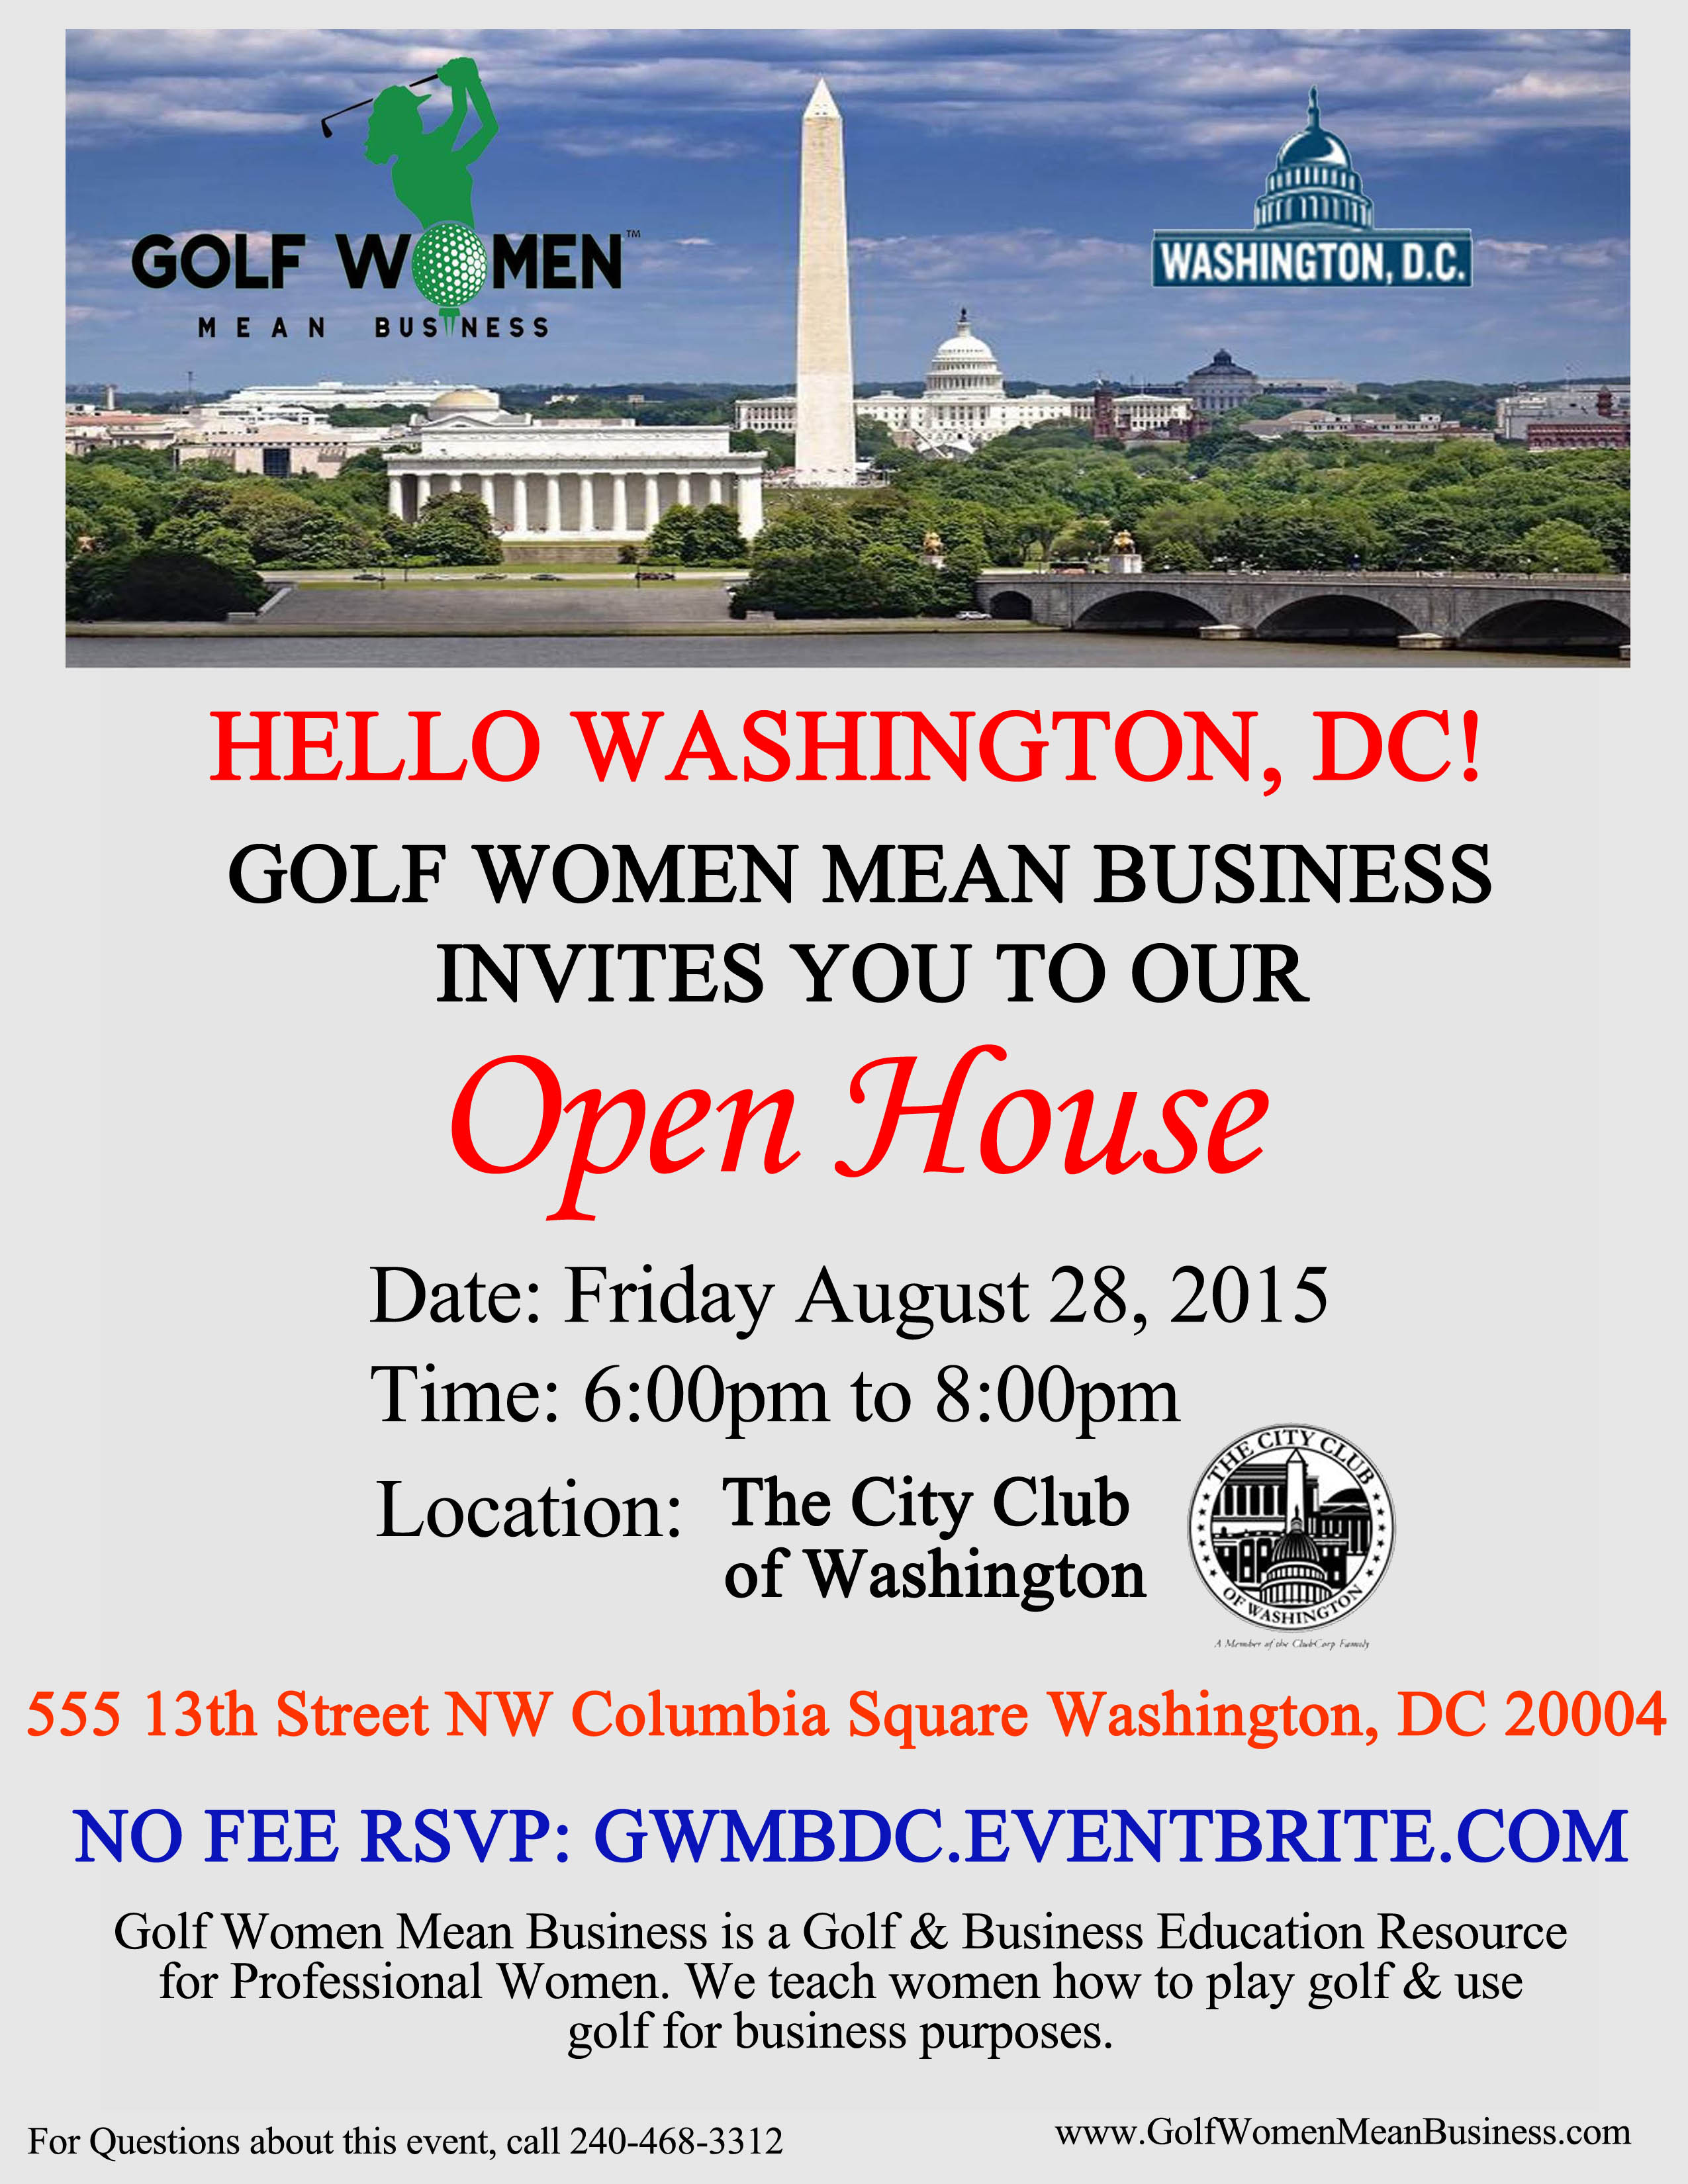 90 open house meaning in marathi house open marathi in meaning open house meaning in marathi golf open business mean business dc house stopboris Gallery